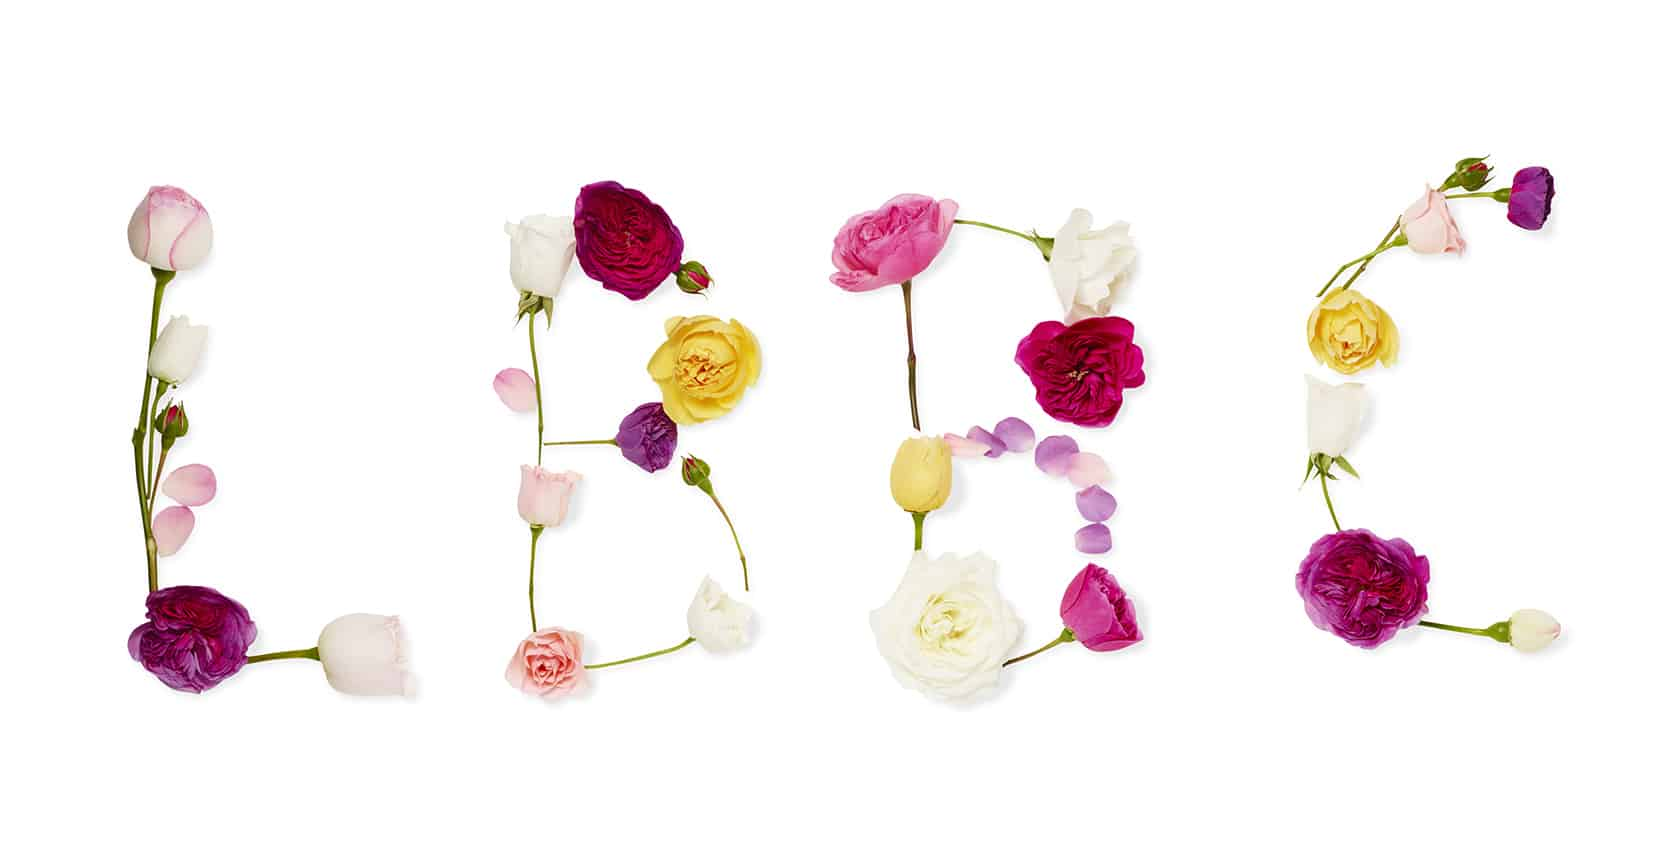 LBBC spelled out in flowers